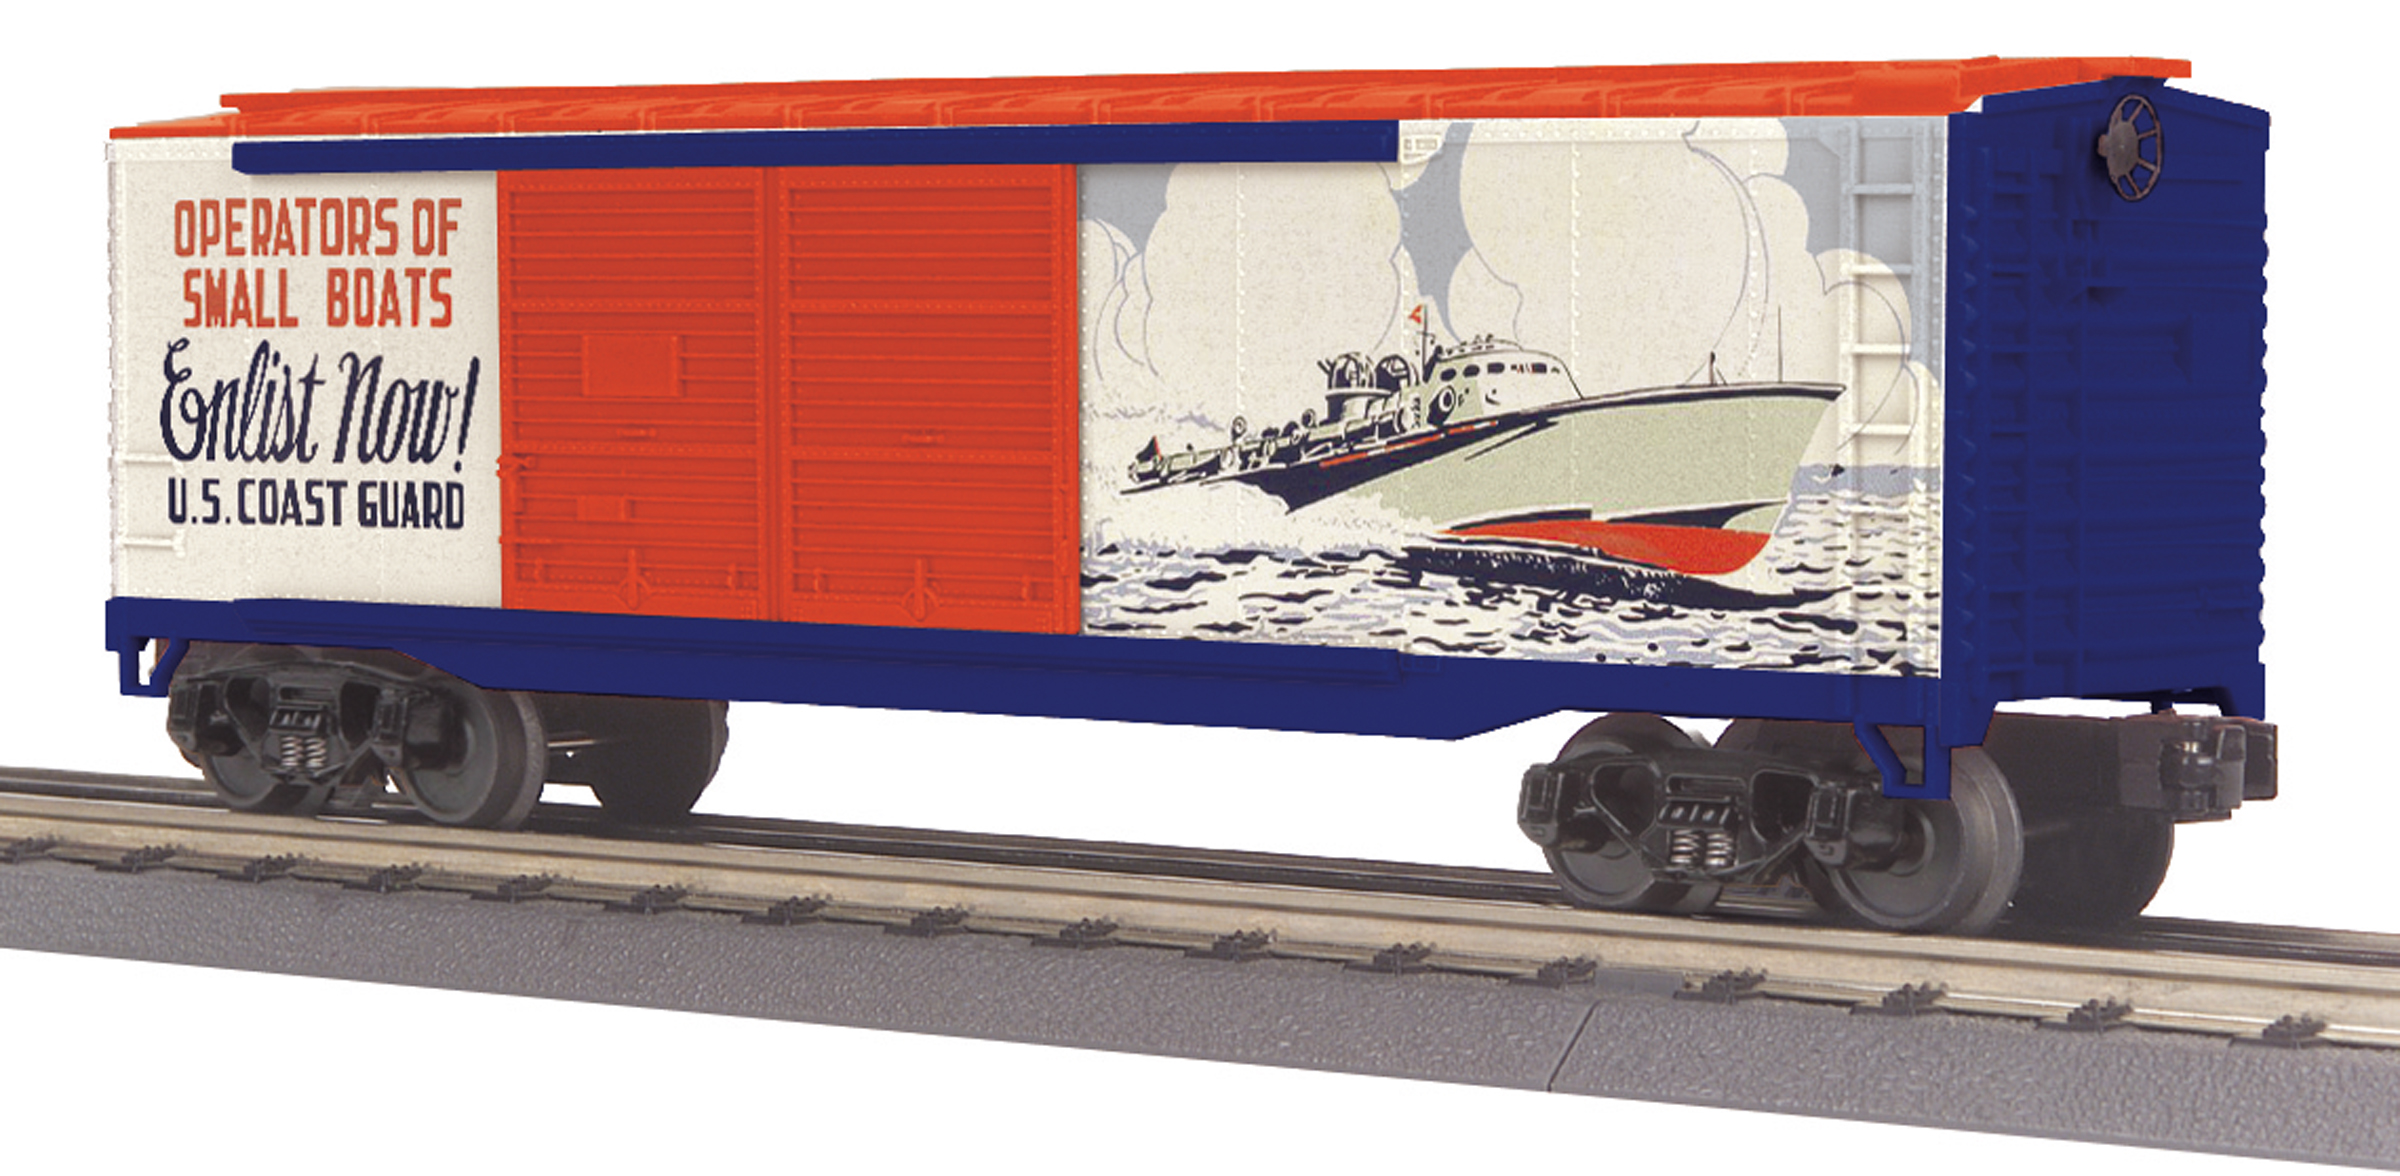 U.S. Coast Guard (Recruitment Poster) 40' Double Door Box Car image